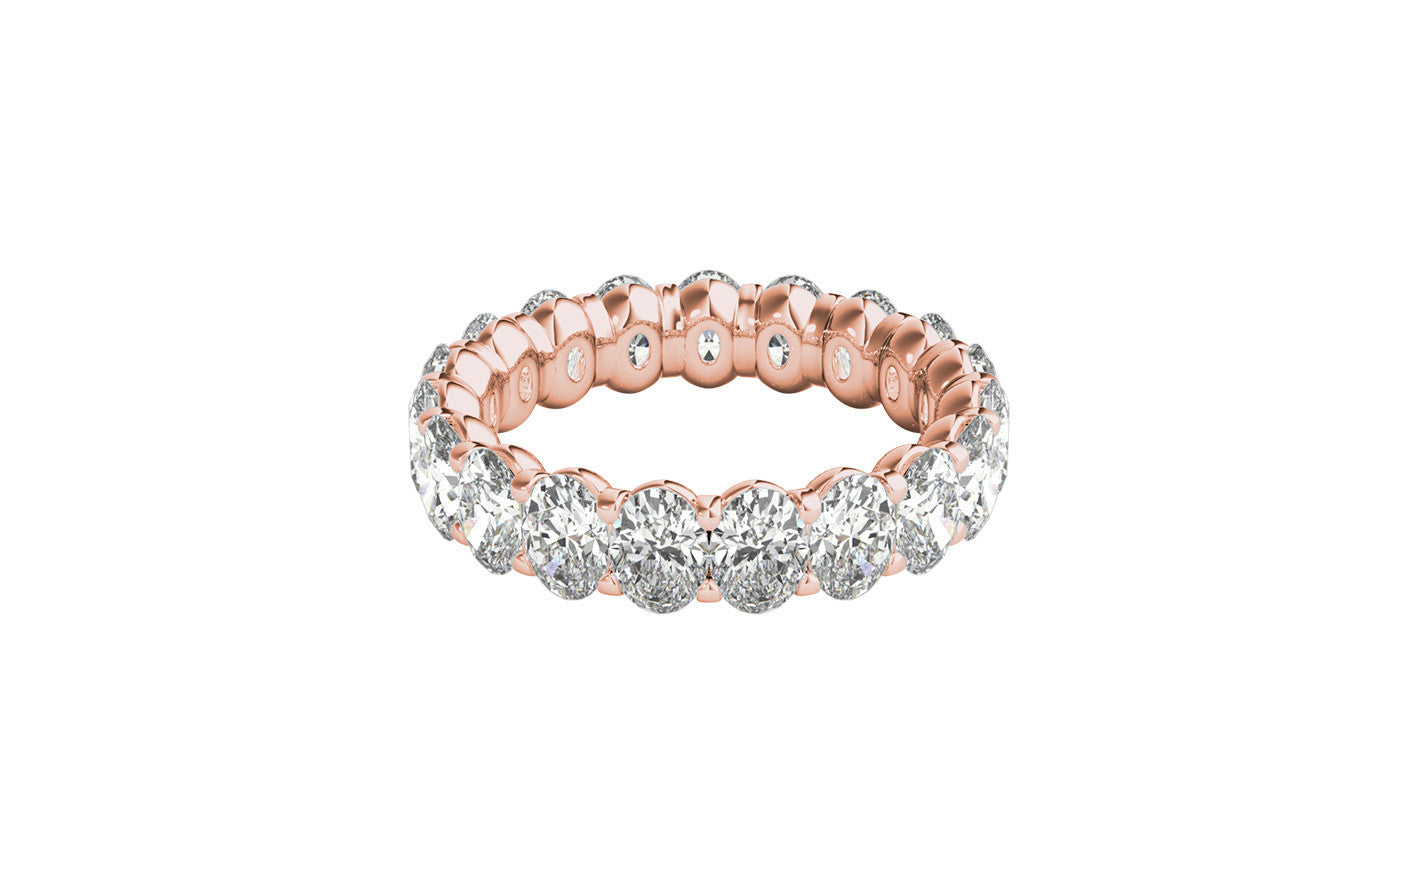 product aquamarine eternity band dainty gold bands home aquamarines birthstone genuine half in rose with